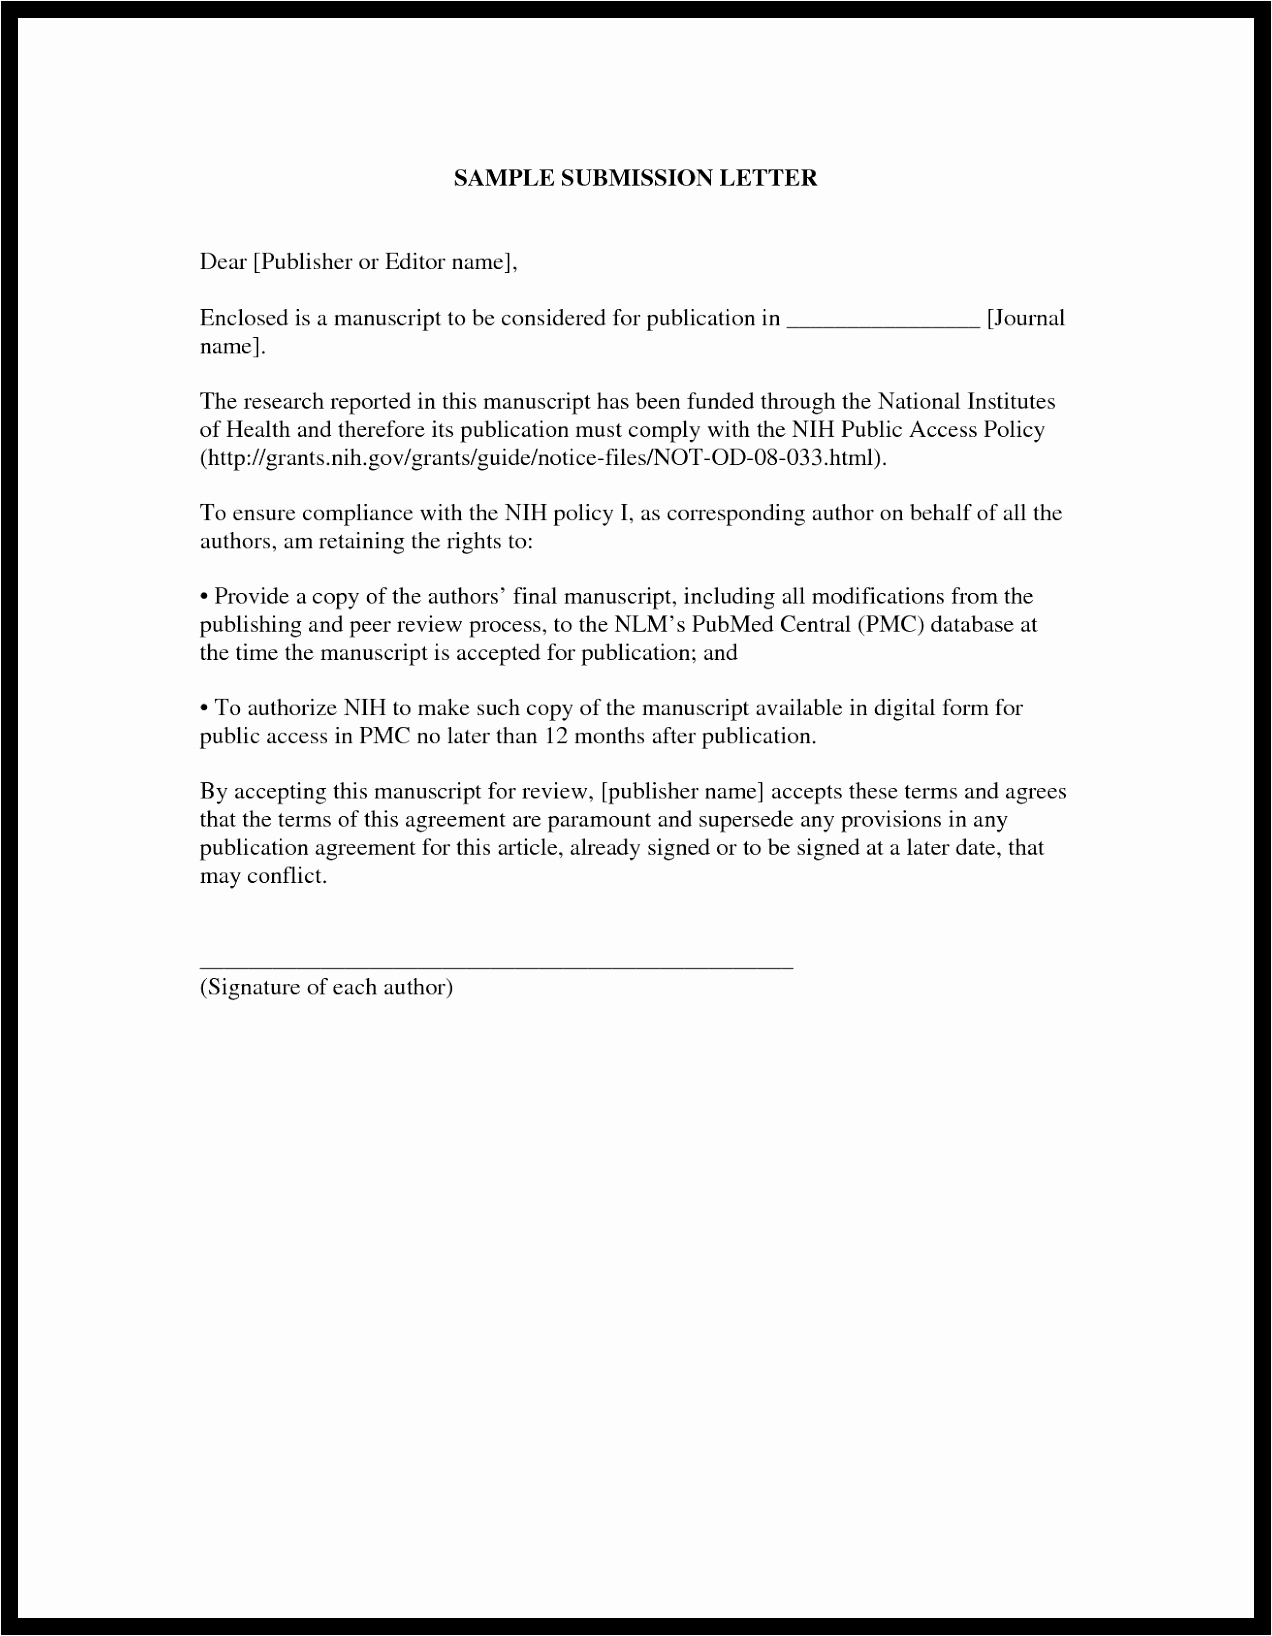 Child Maintenance Agreement Letter Template Samples